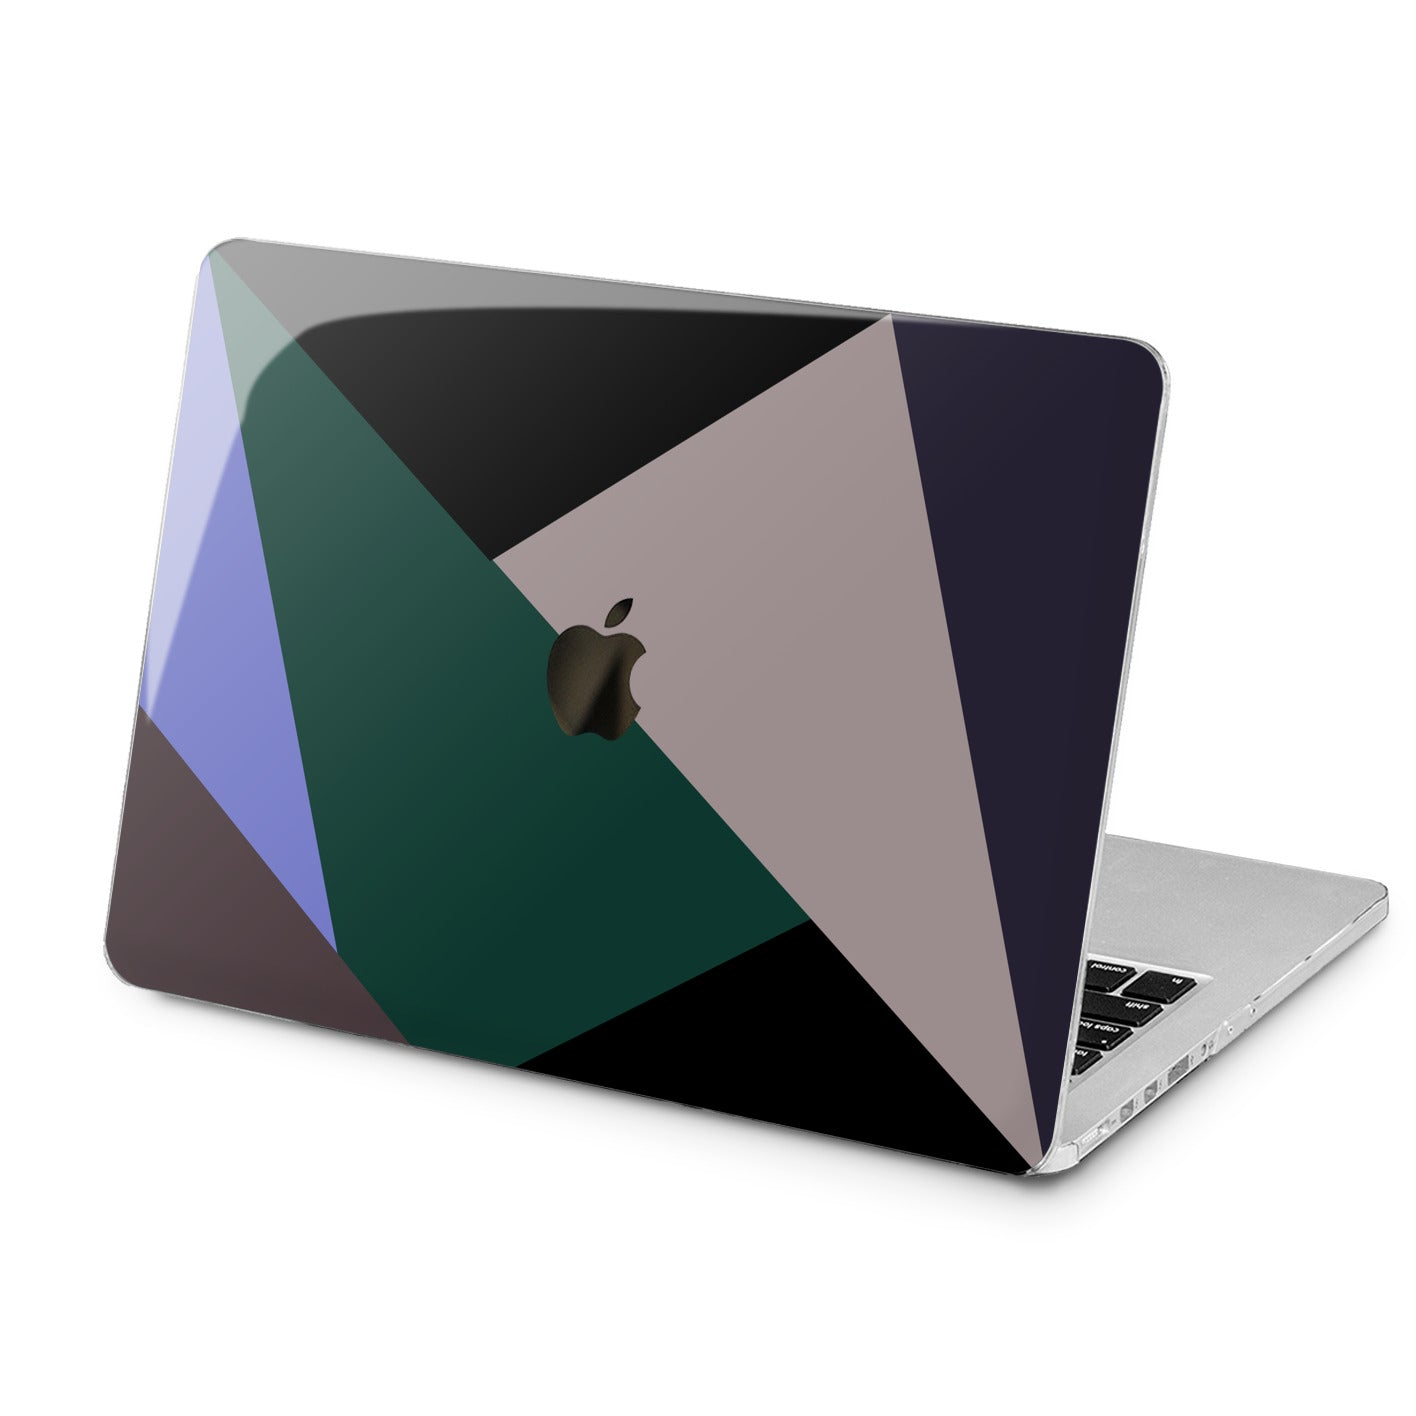 Lex Altern Lex Altern Triangle Shapes Case for your Laptop Apple Macbook.